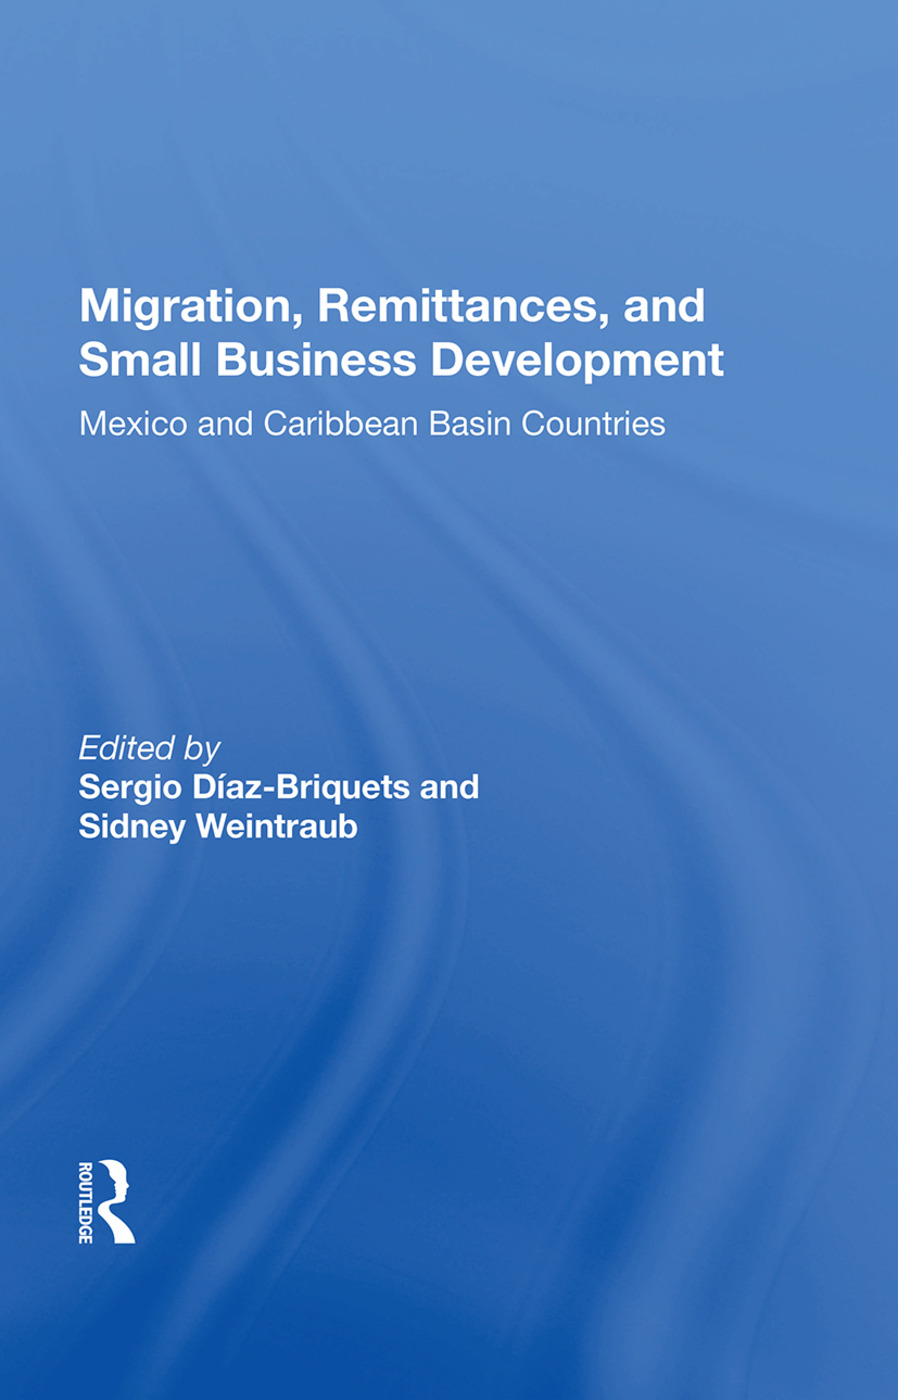 Migration, Remittances, And Small Business Development: Mexico And Caribbean Basin Countries book cover